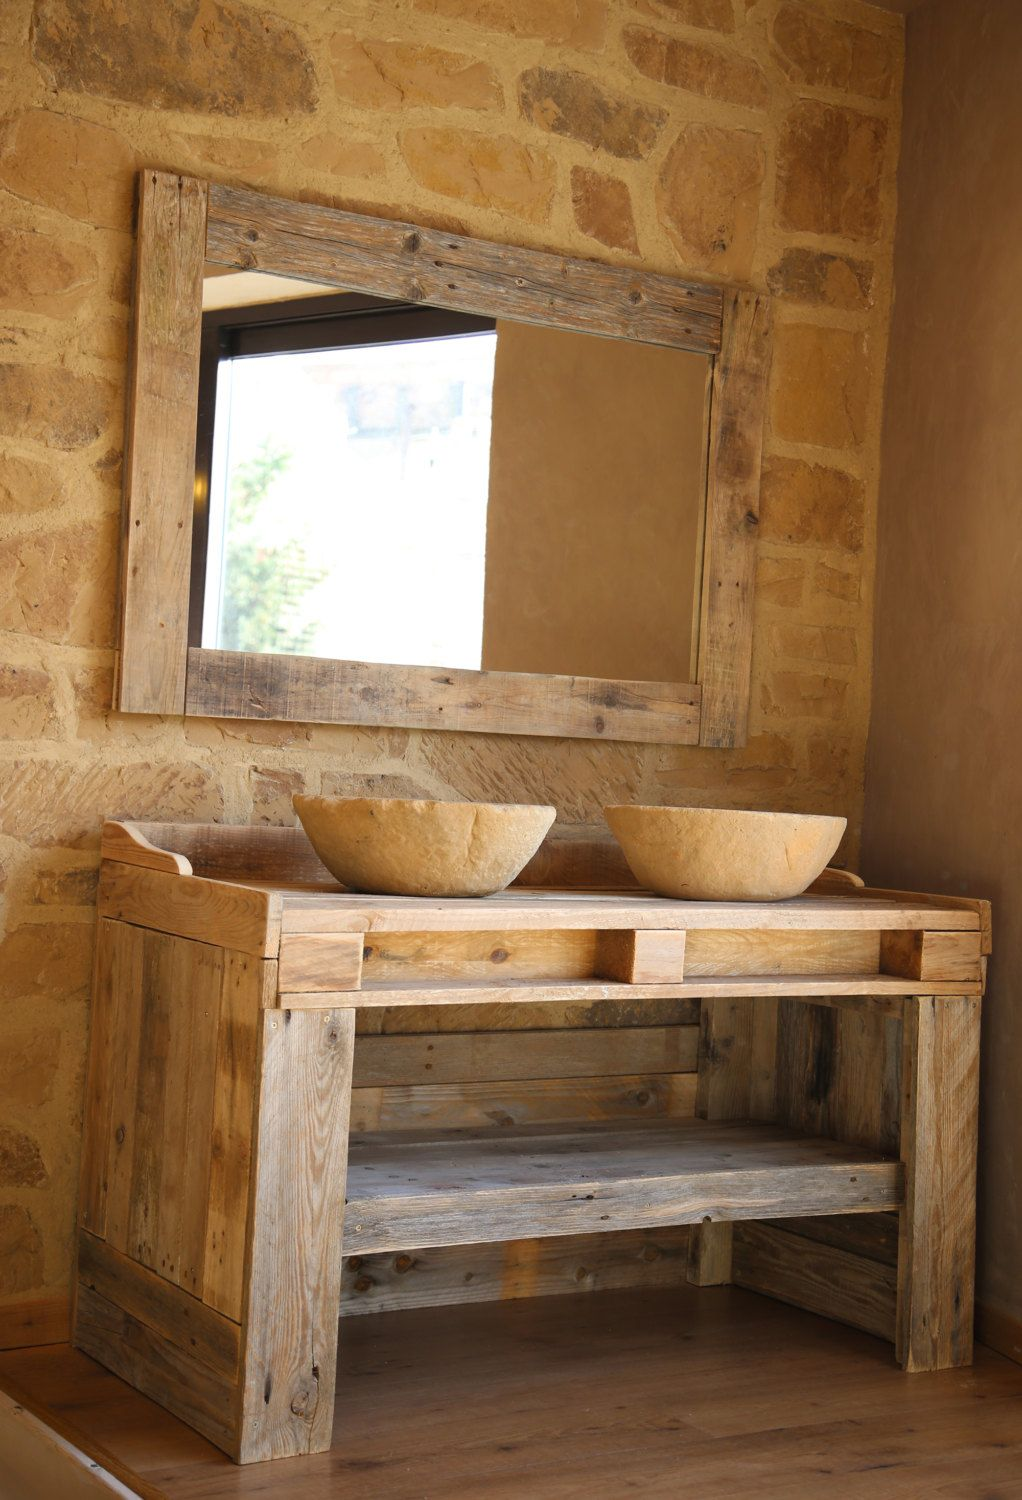 Bathroom Cabinet Made From Recycled Pallet Wood With Washbasins In